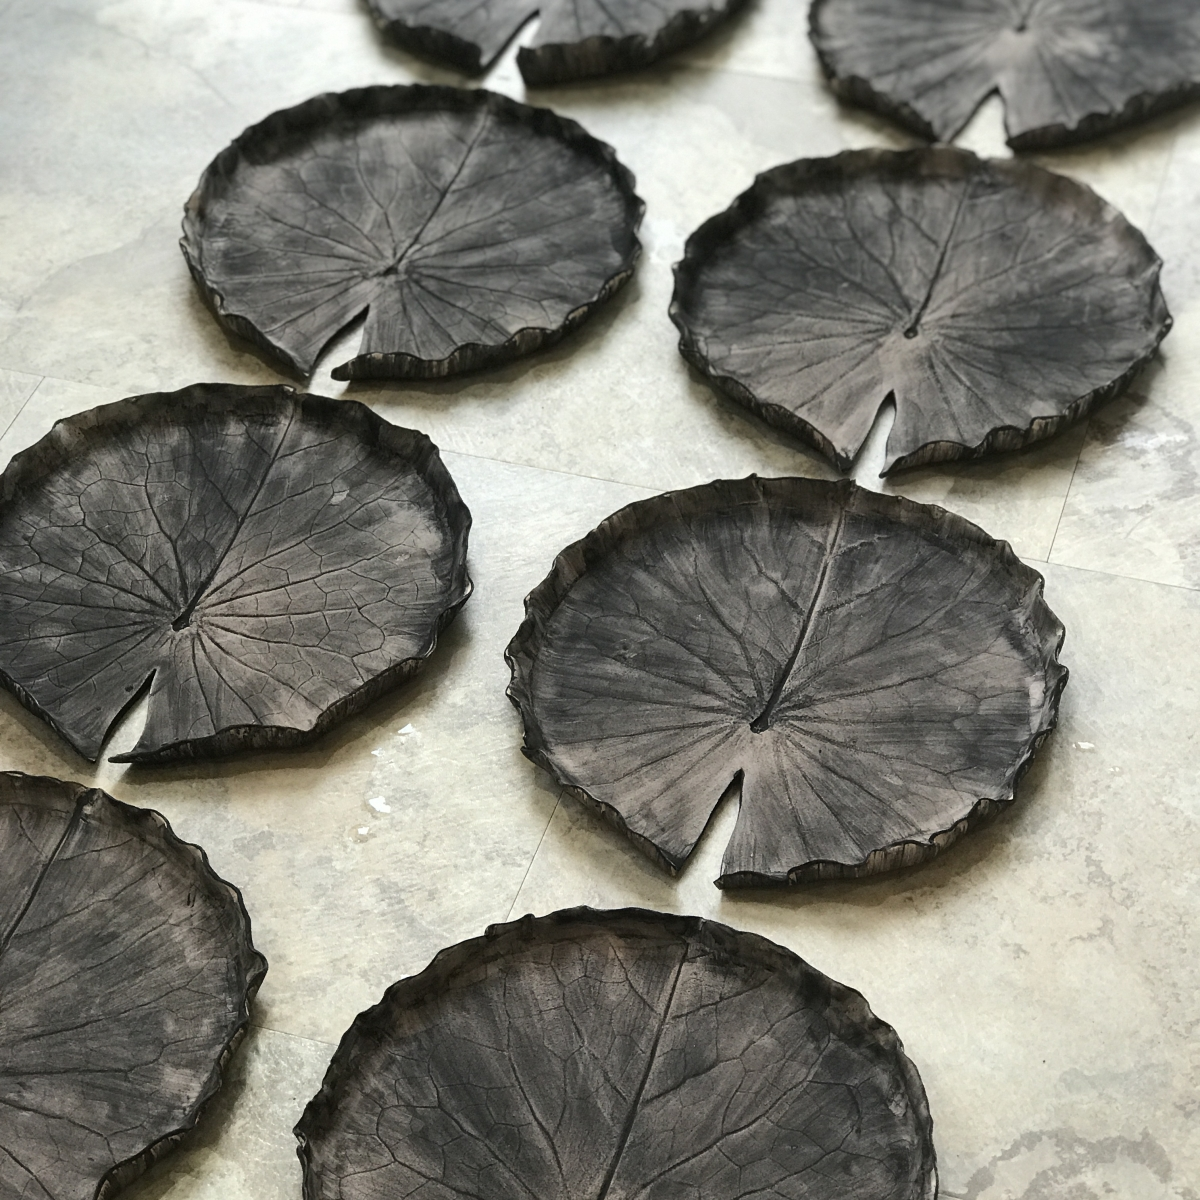 Pond Lily Dishes by Sonya Ceramic Art Showing Oxide Stage of Glazing